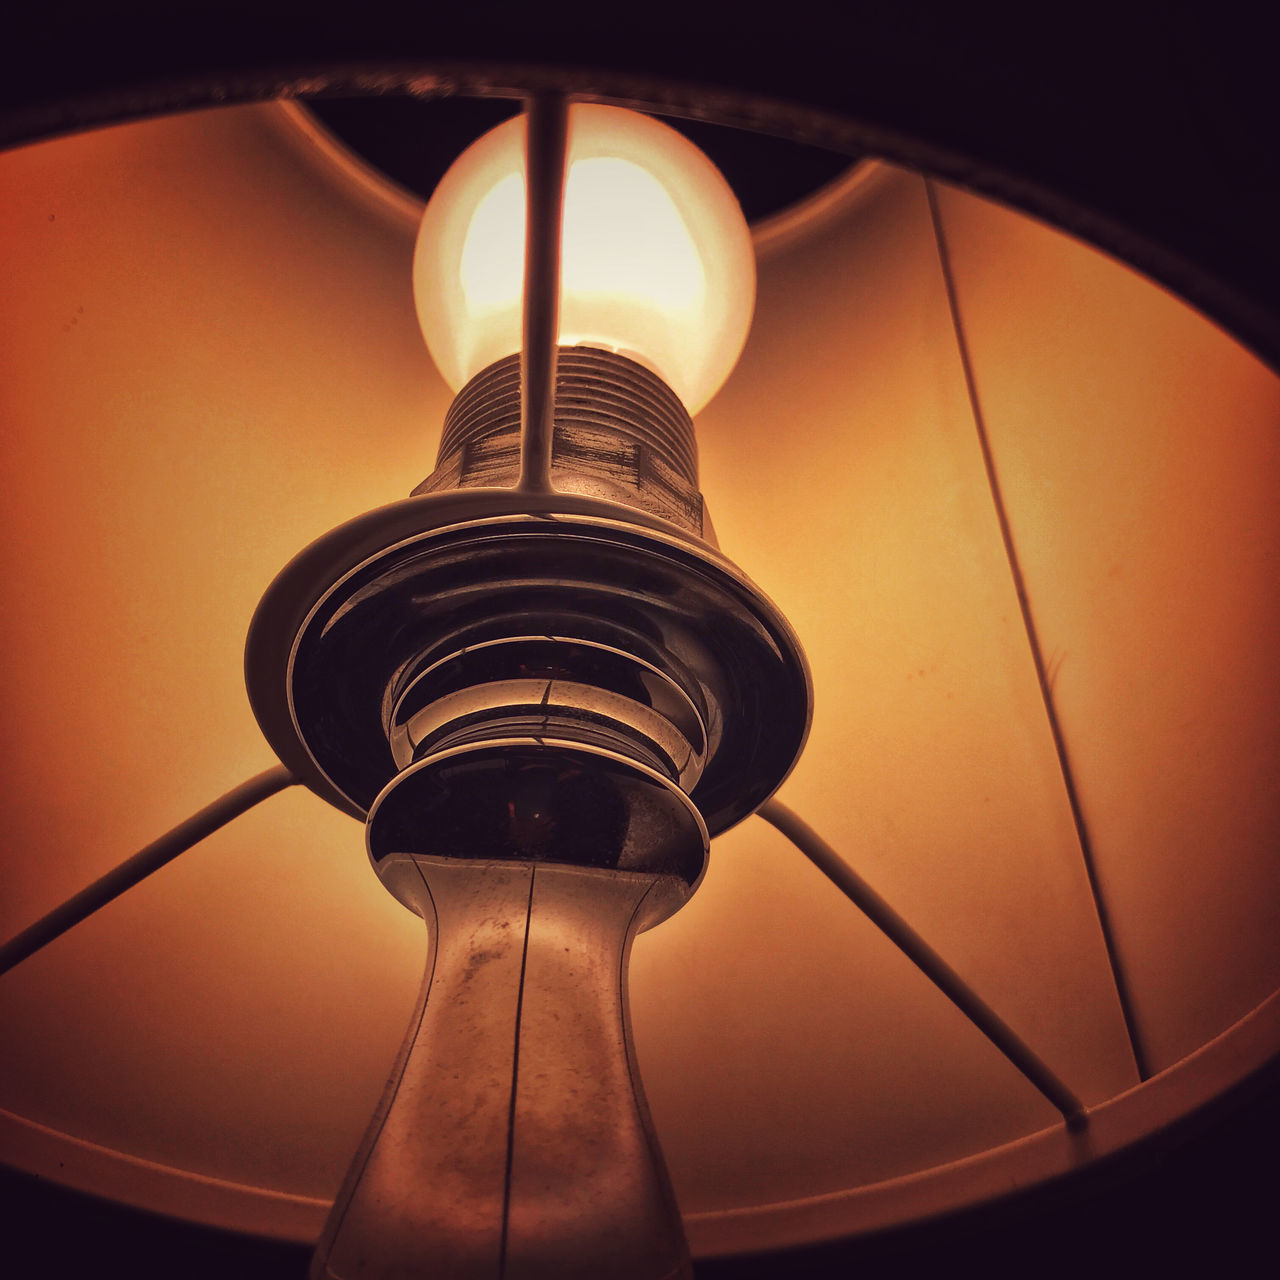 LOW ANGLE VIEW OF LIGHT BULB